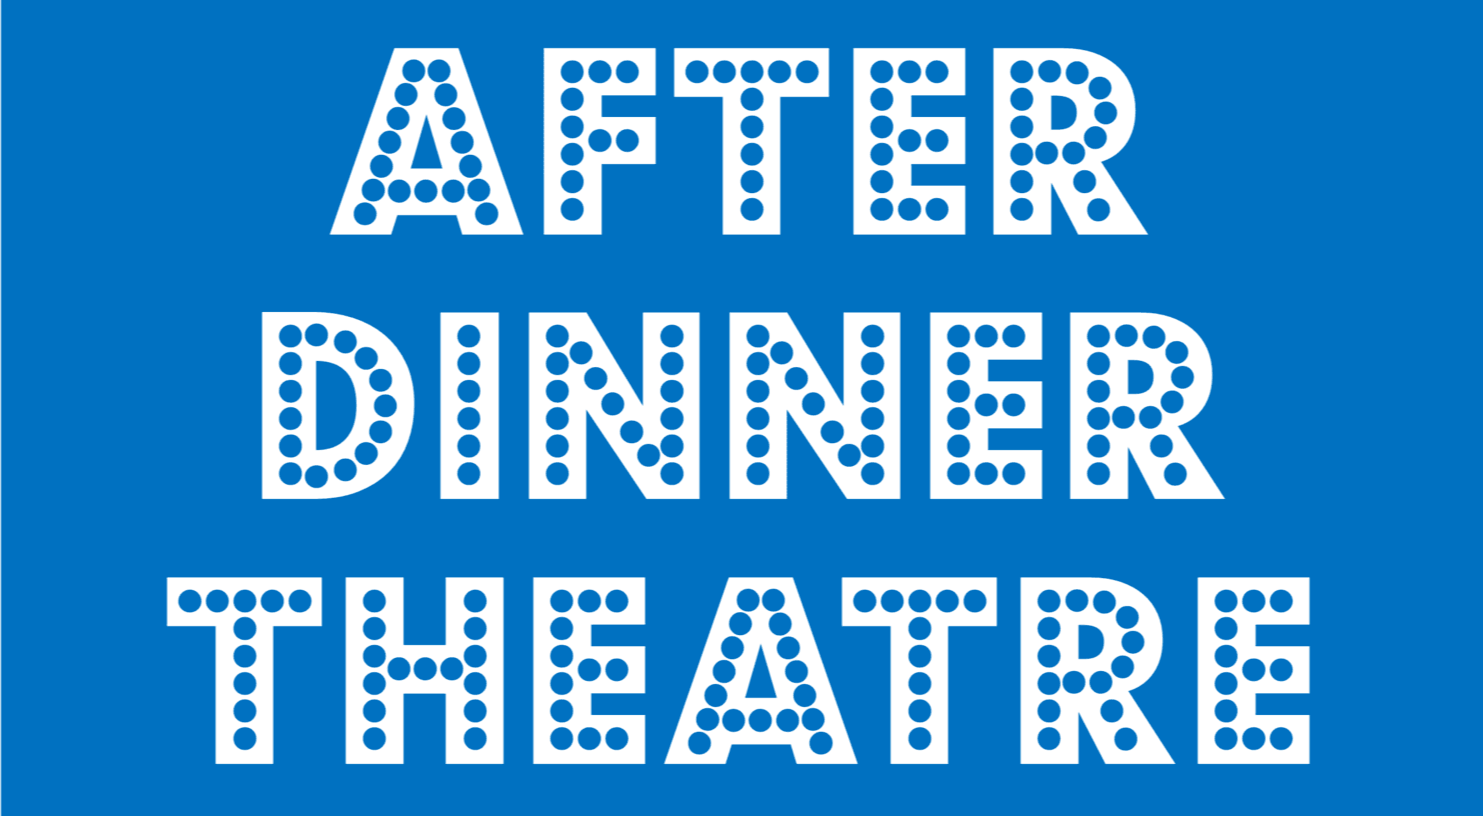 After dinner theatre logo